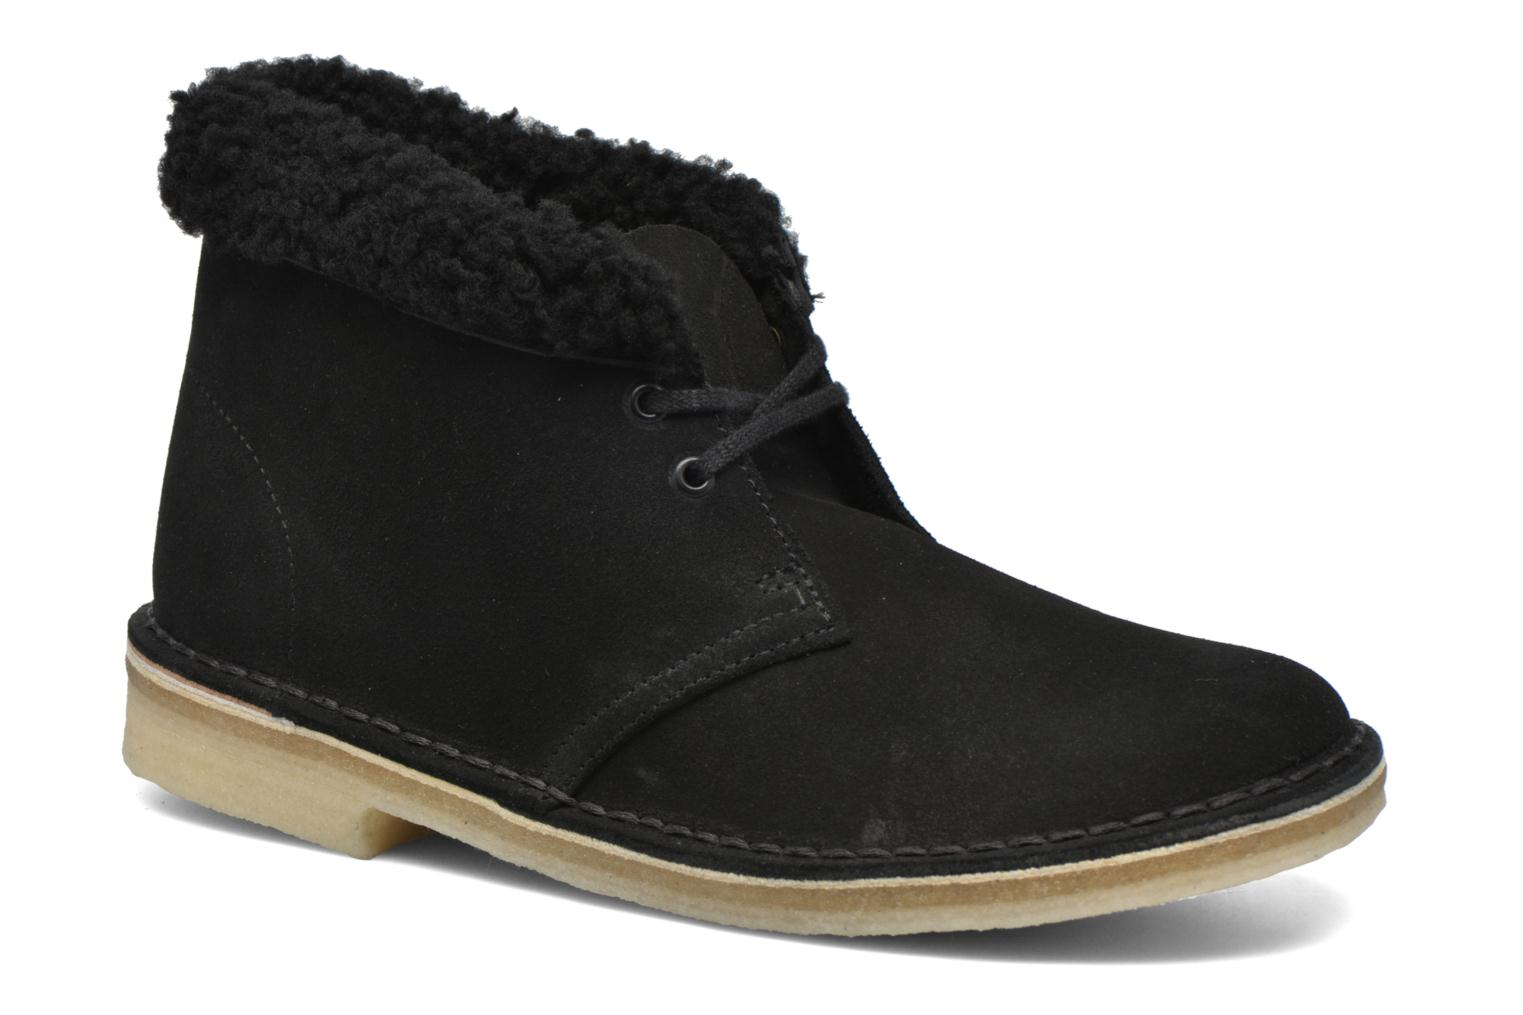 DESERT BOOT WOOL LINED W Black Suede